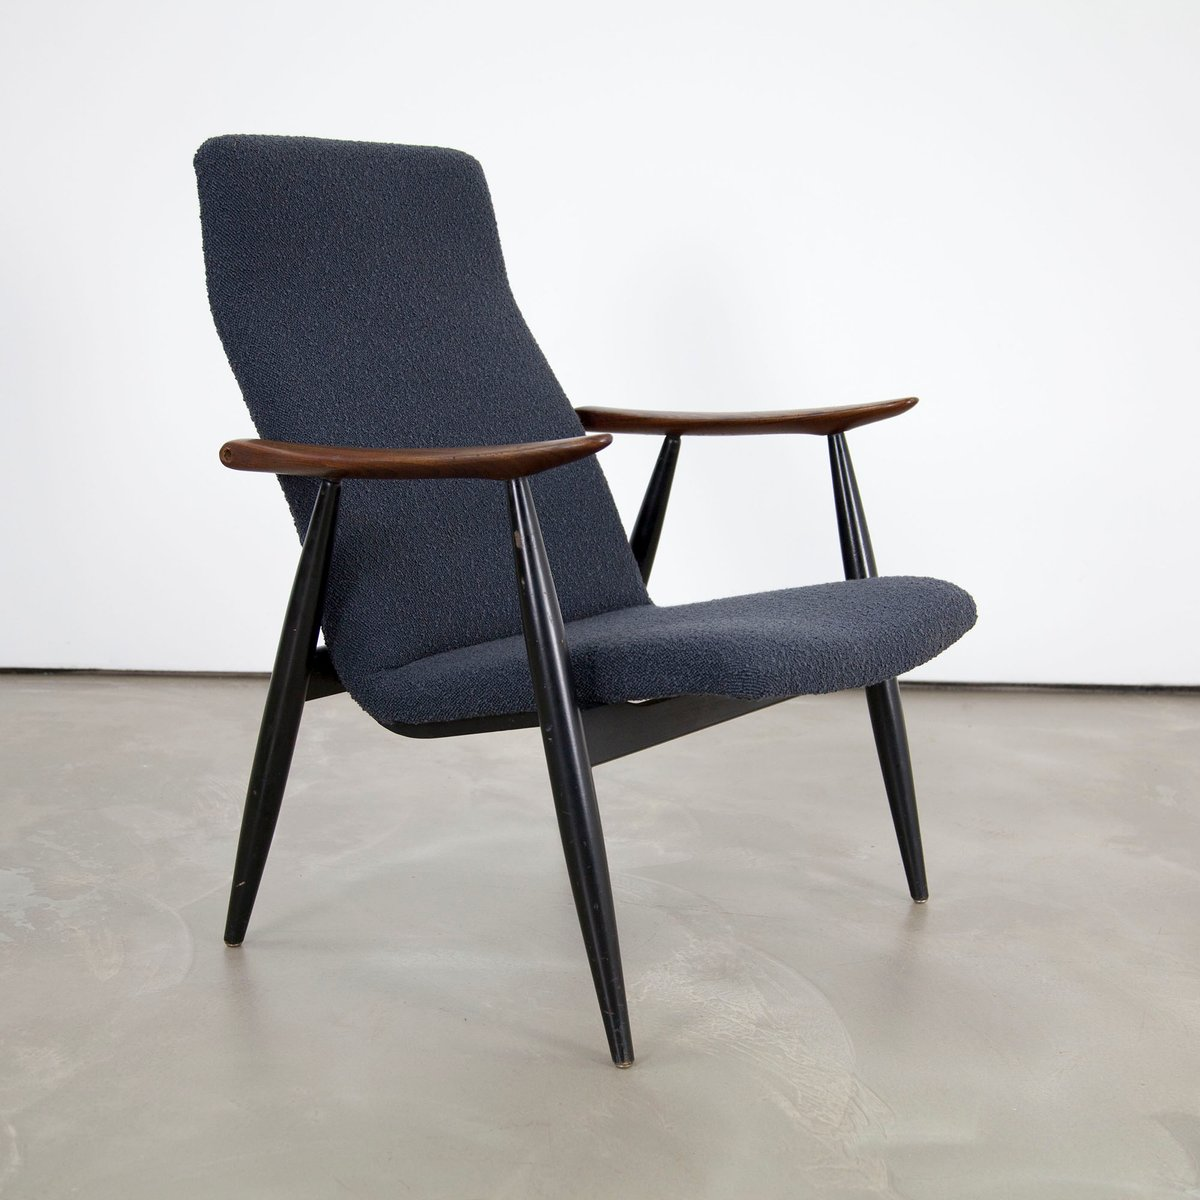 Scandinavian Chair Vintage Scandinavian Lounge Chair By Olli Borg For Asko